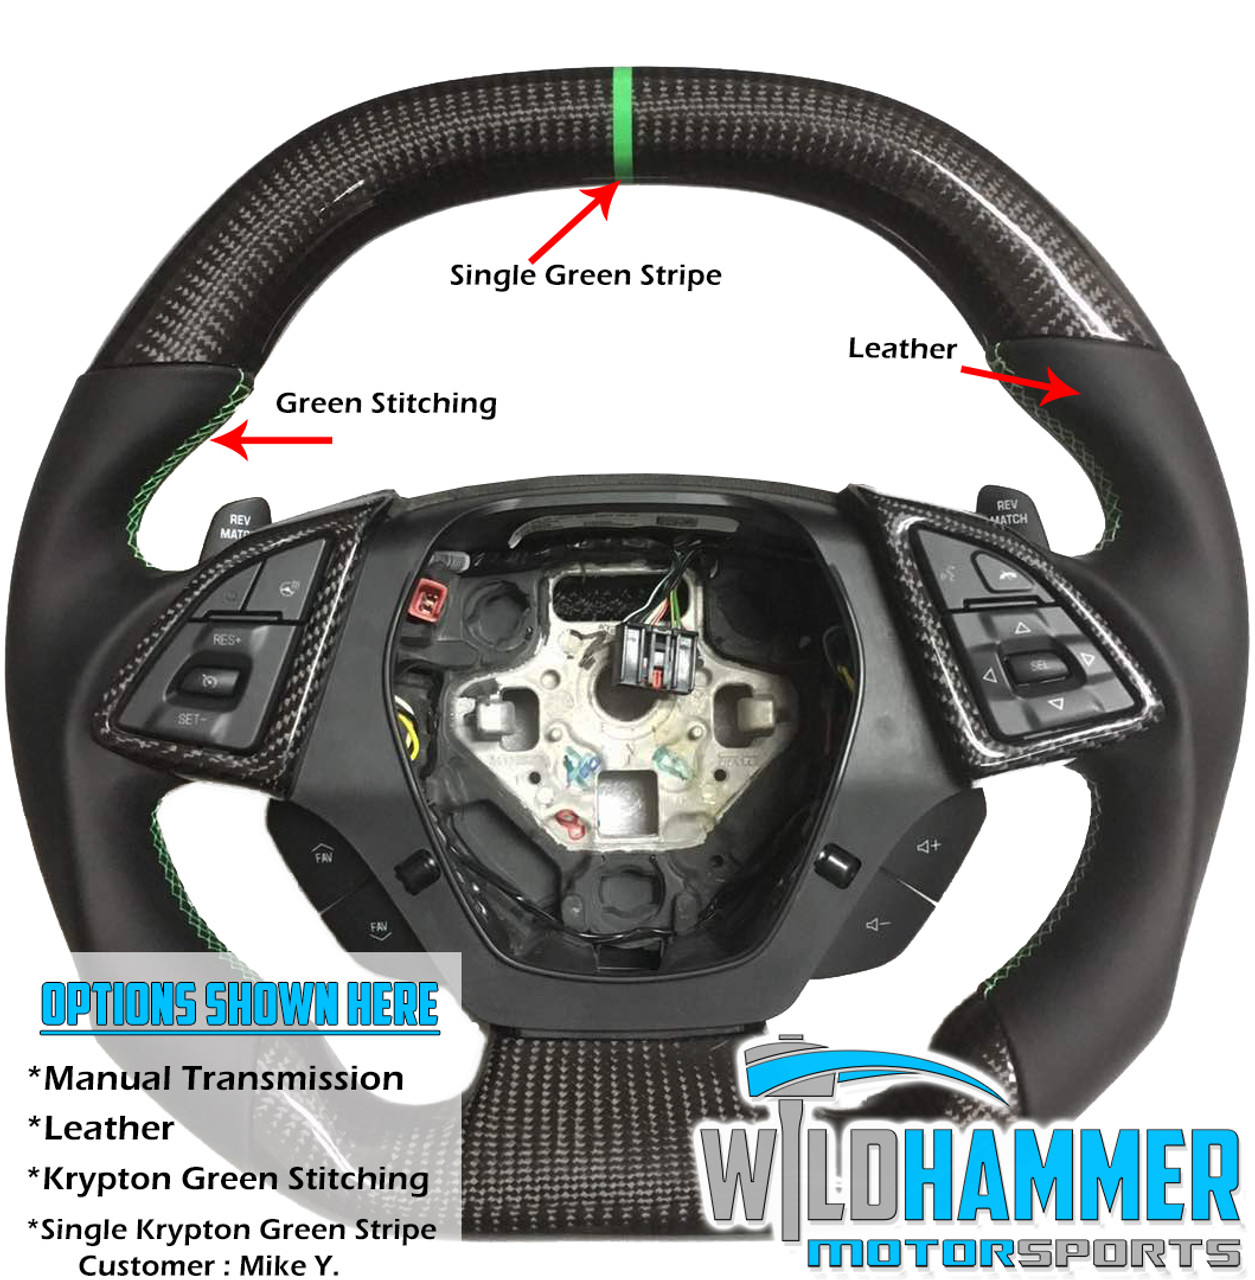 16 20 Make Your Own Camaro Carbon Fiber Steering Wheel Wildhammer Wh11